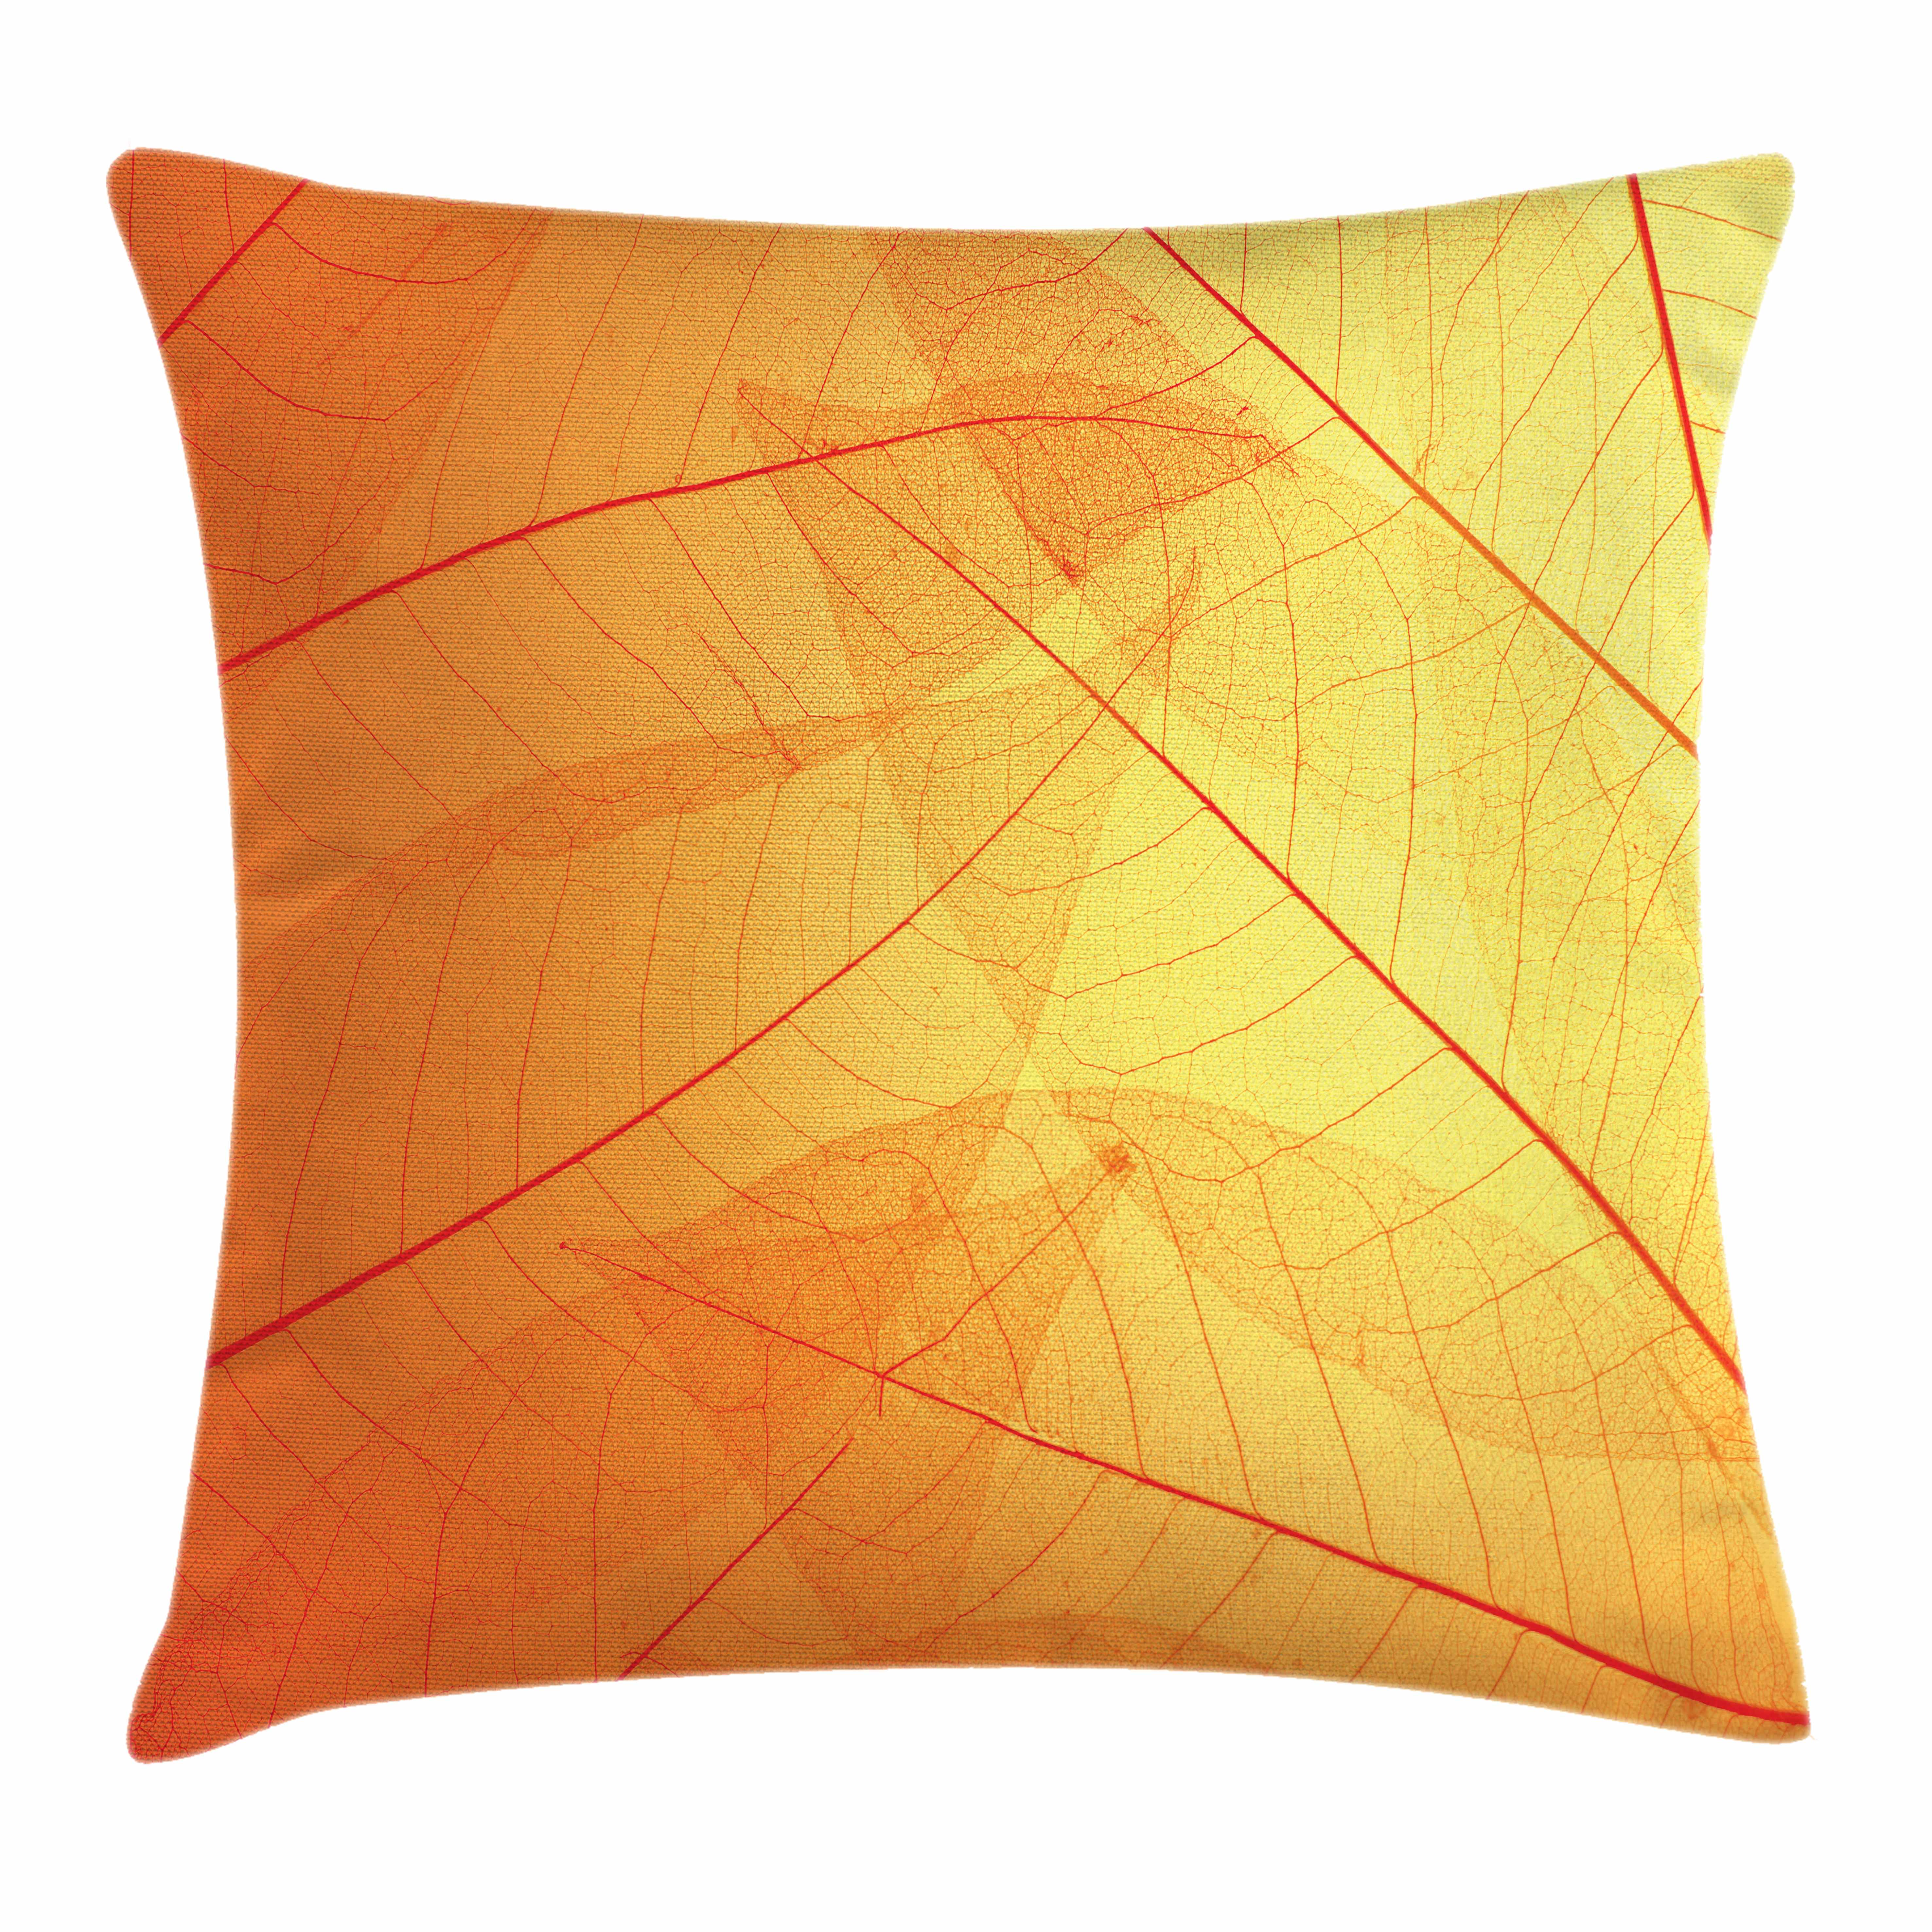 Orange Throw Pillow Cushion Cover, Autumn Nature Fall Season Themed Dried Leaves Skeleton Vivid Veins Close Up, Decorative Square Accent Pillow Case, 16 X 16 Inches, Red Orange Mustard, by Ambesonne